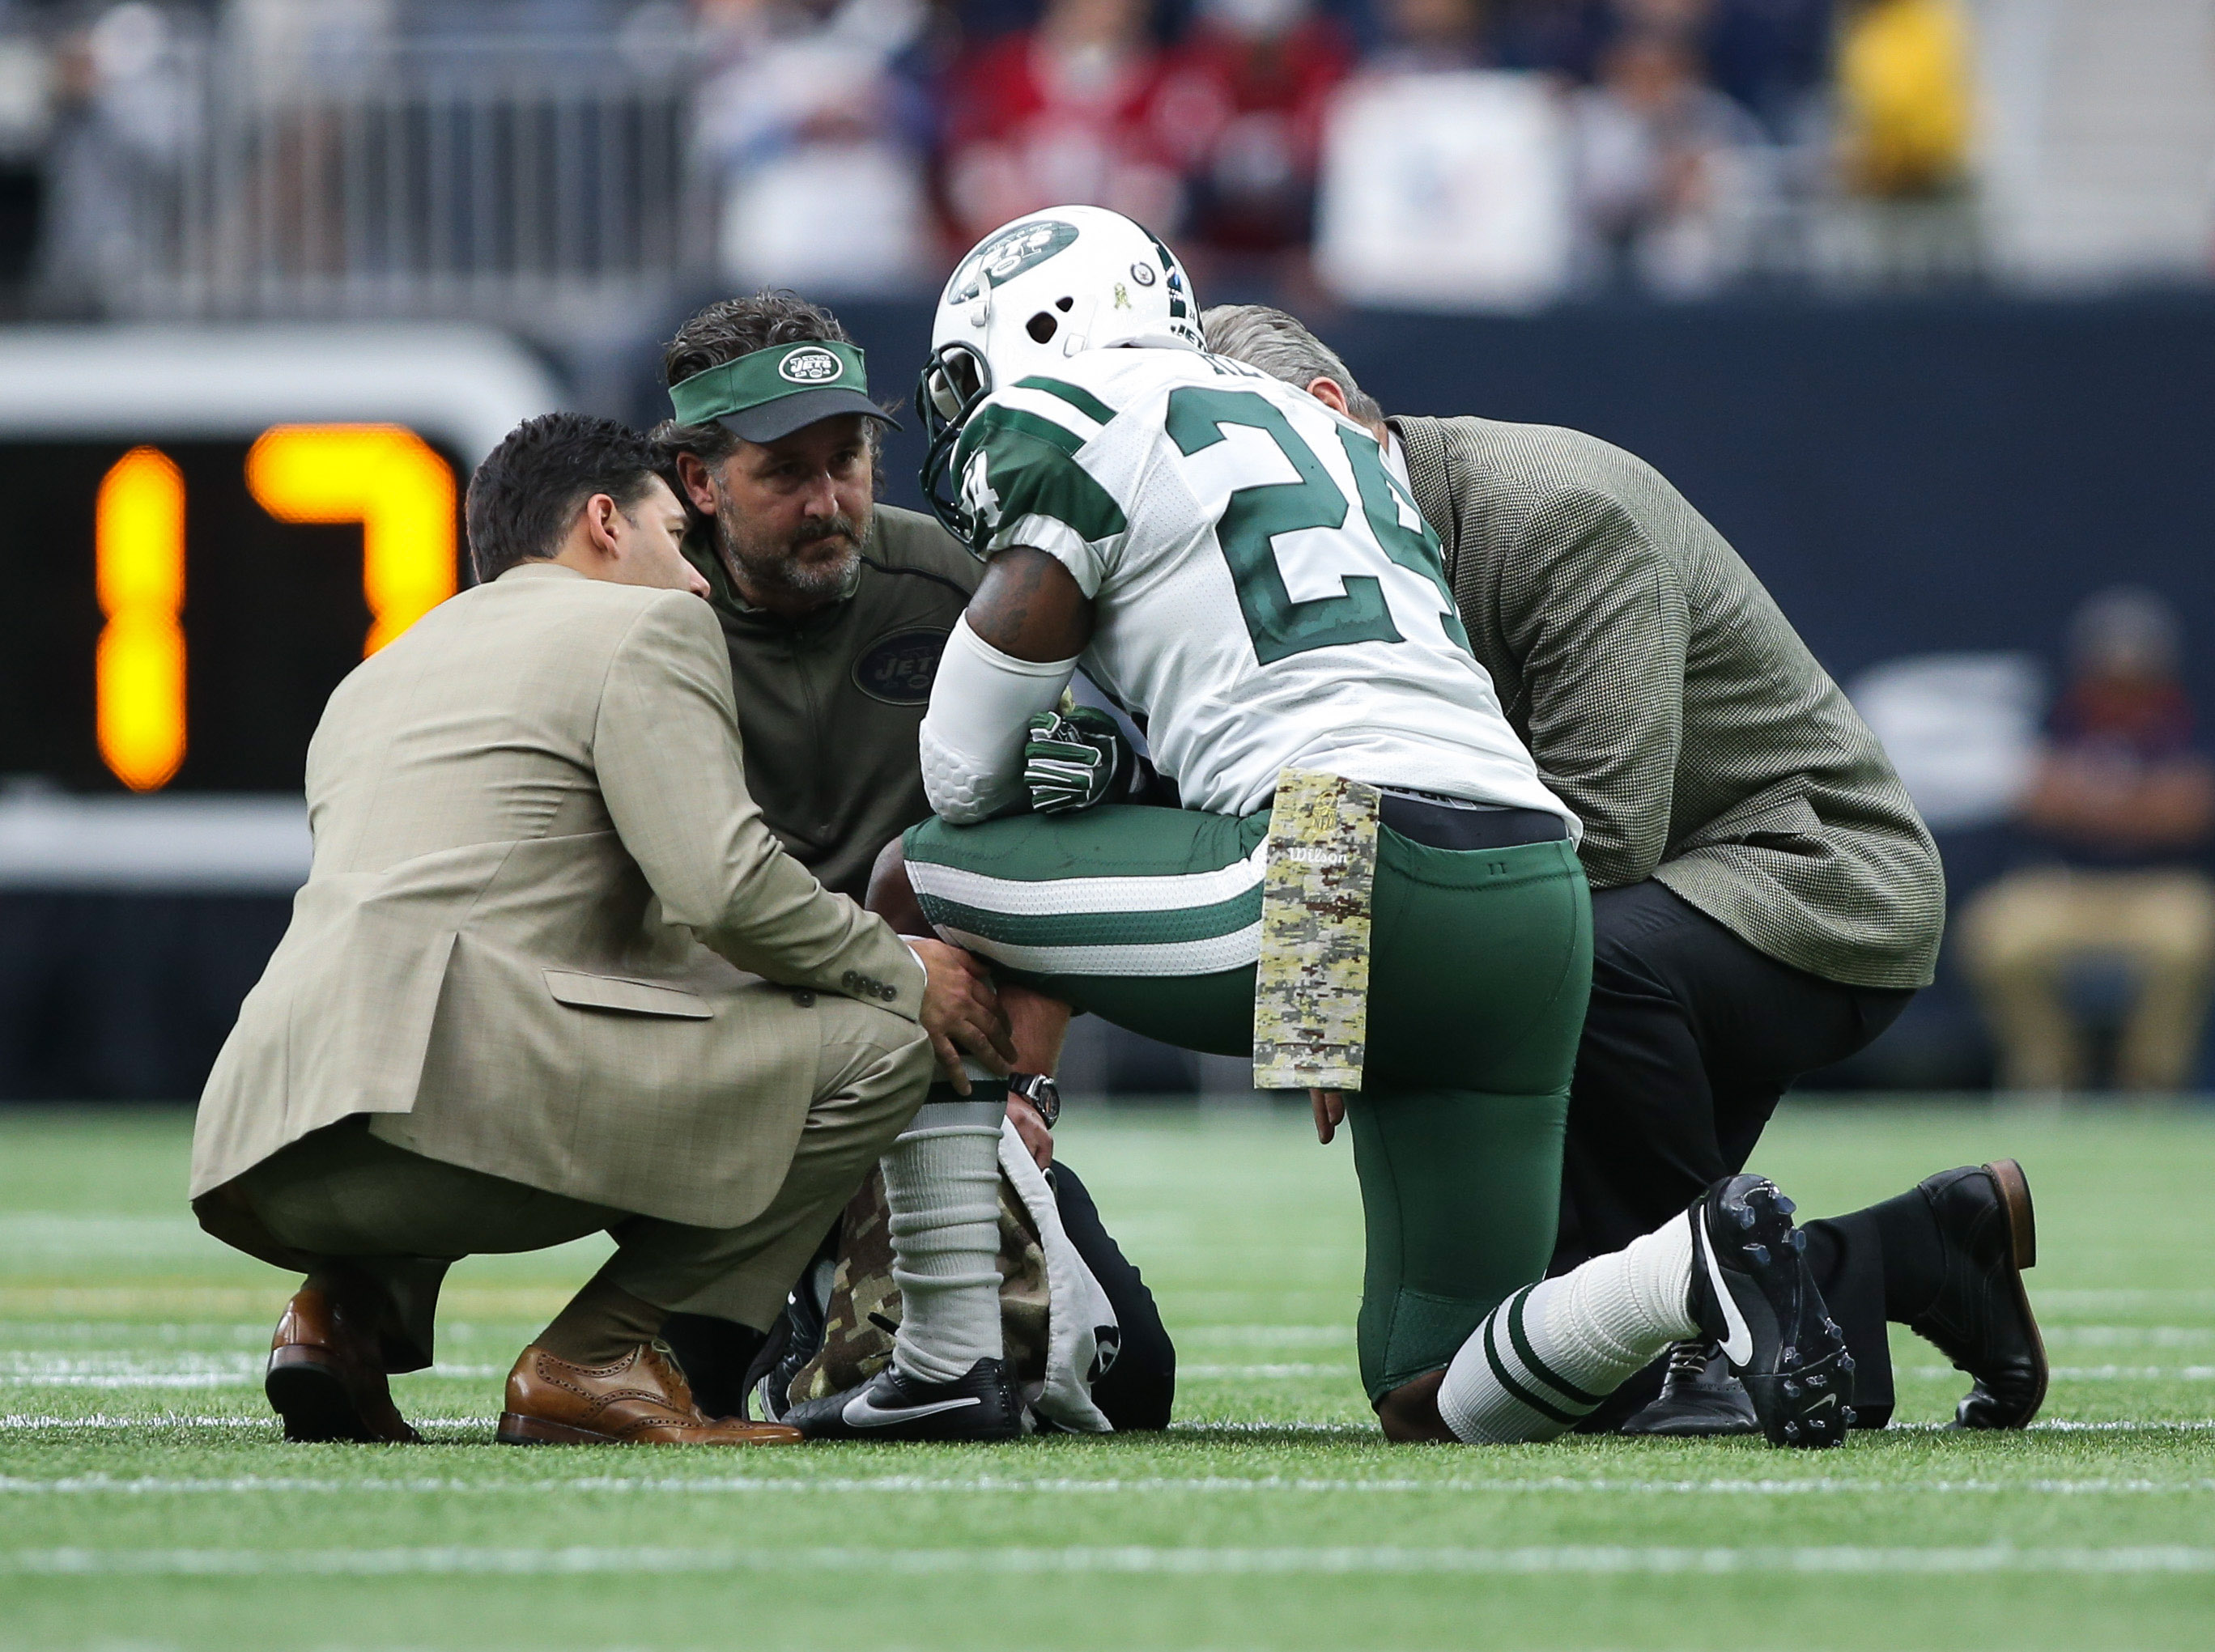 Darrelle Revis may sit out the Giants game with a concussion